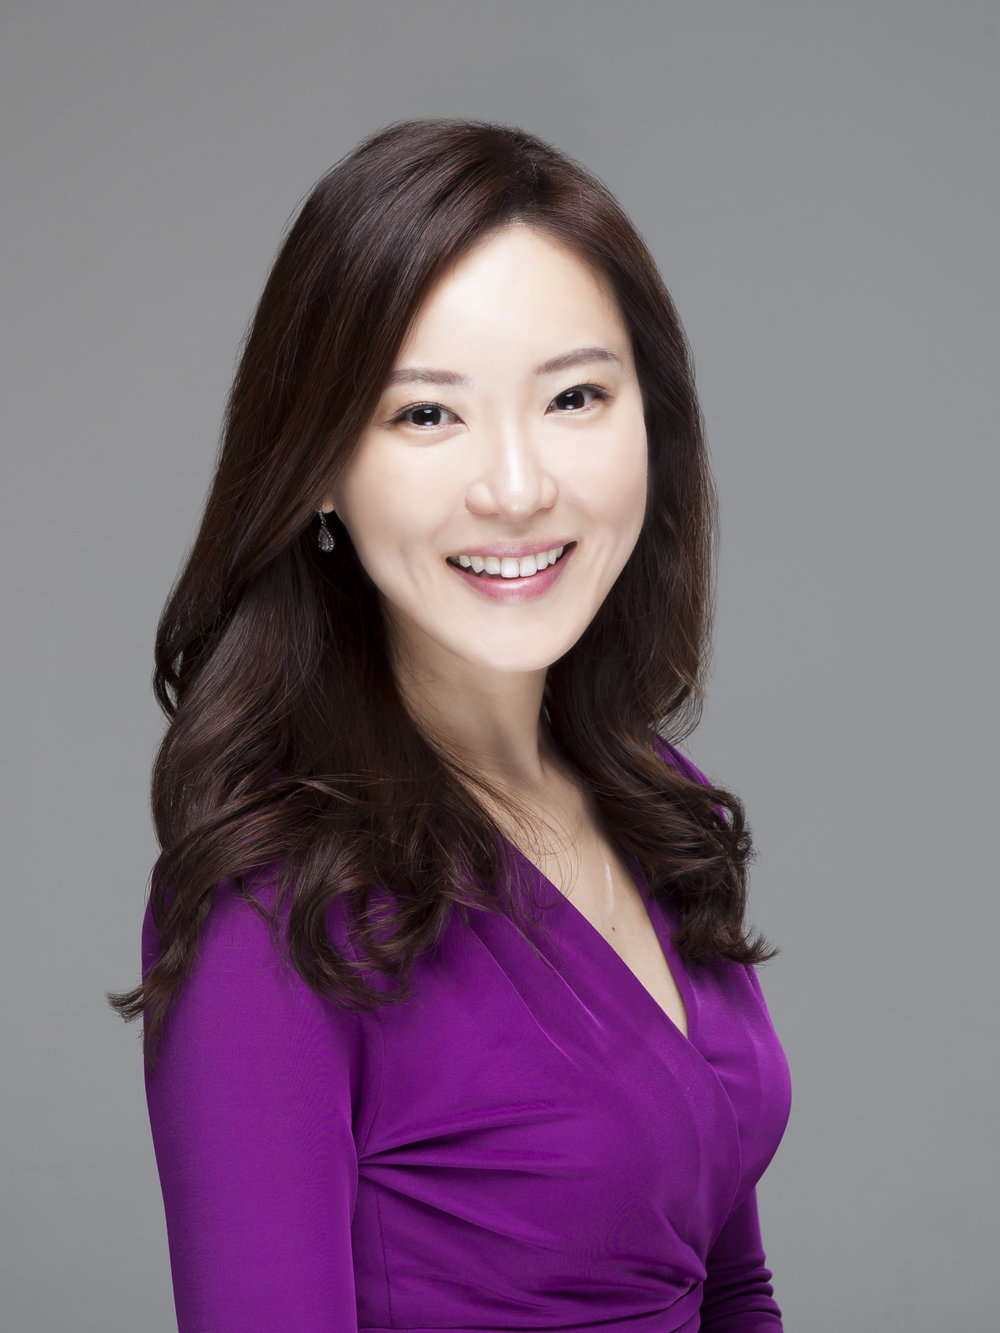 "Musicologist and pianist  Jung-Min ""Mina"" Lee (Singing Contest Judge)  has taught courses in music theory, music history, music appreciation, and music criticism at Duke University, Montclair State University, and Baekseok Arts University in Seoul, Korea. She has been writing the Program Notes for the Chamber Orchestra of the Triangle since 2015 and also given pre-concert lectures for various classical music concerts in Korea. She holds a master's degree in piano performance from the Manhattan School of Music and a Ph.D. in musicology from Duke University, where she gave guest lectures on K-pop. Currently, she is working on a research project at the Asian/Pacific Studies Institute at Duke University."